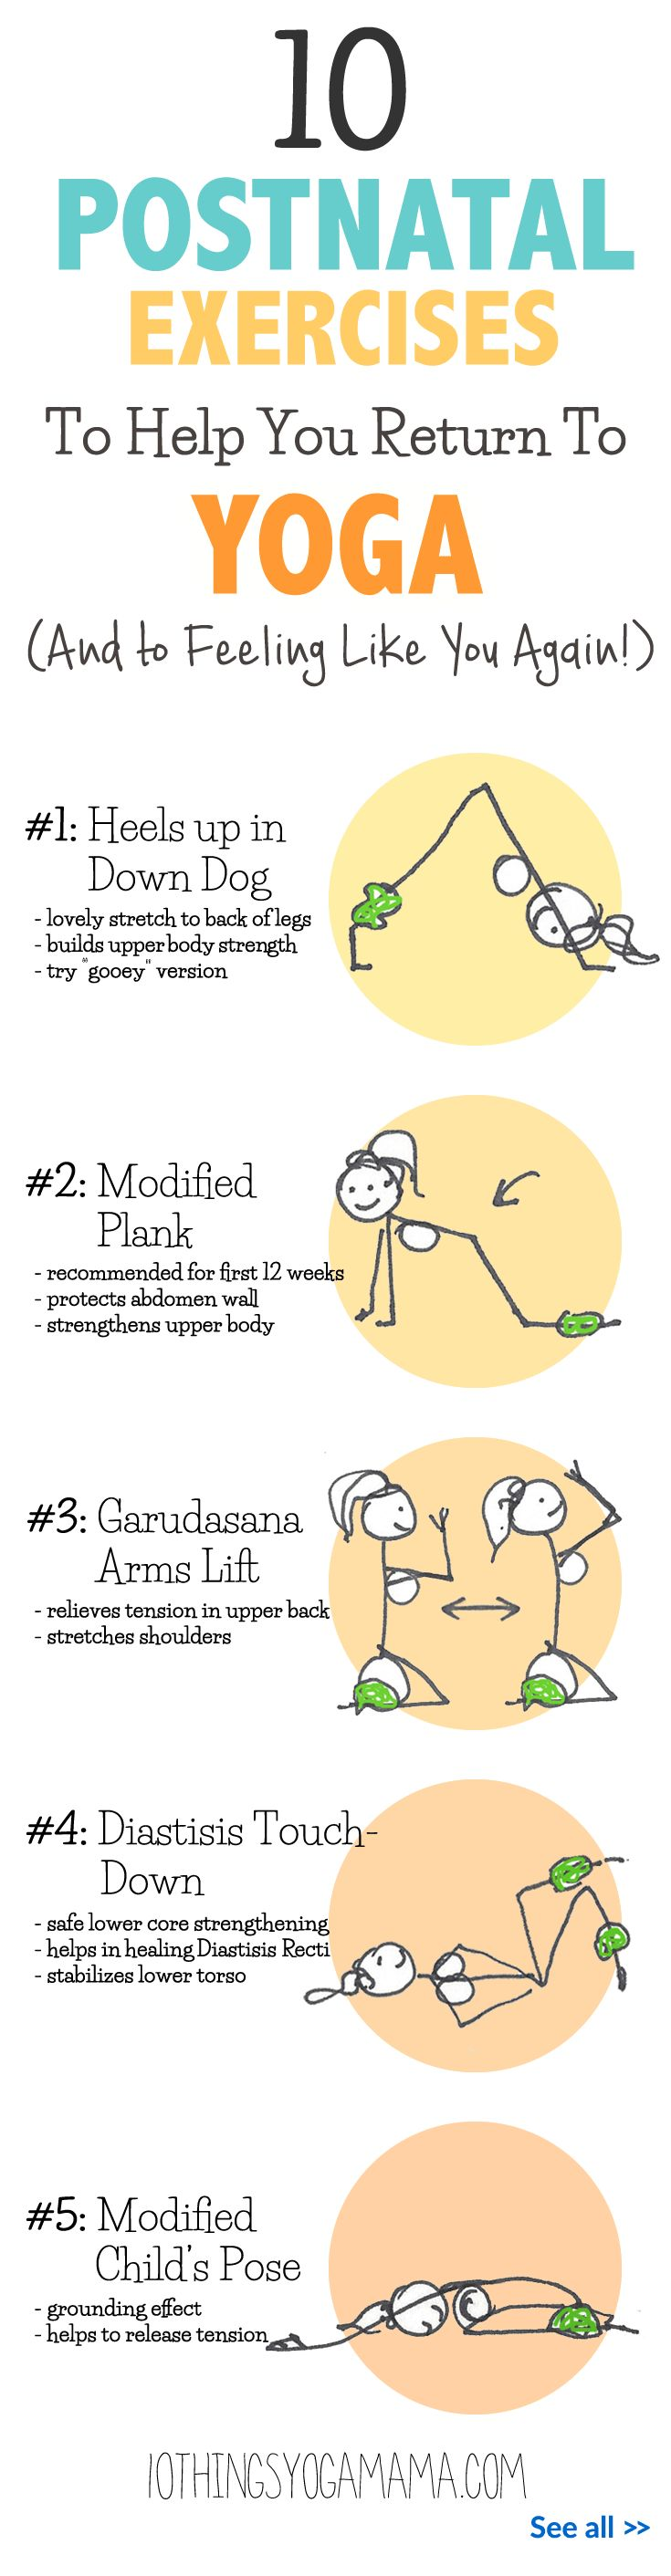 When ready, it feels so good to finally start moving again after months of child-bearing. Here are 10 gentle and safe postnatal yoga exercises that I always seemed to come back to and that helped me along during those first few weeks after birth. 10 Postnatal Exercises To Help You Return To Yoga (And to Feeling Like You Again!)